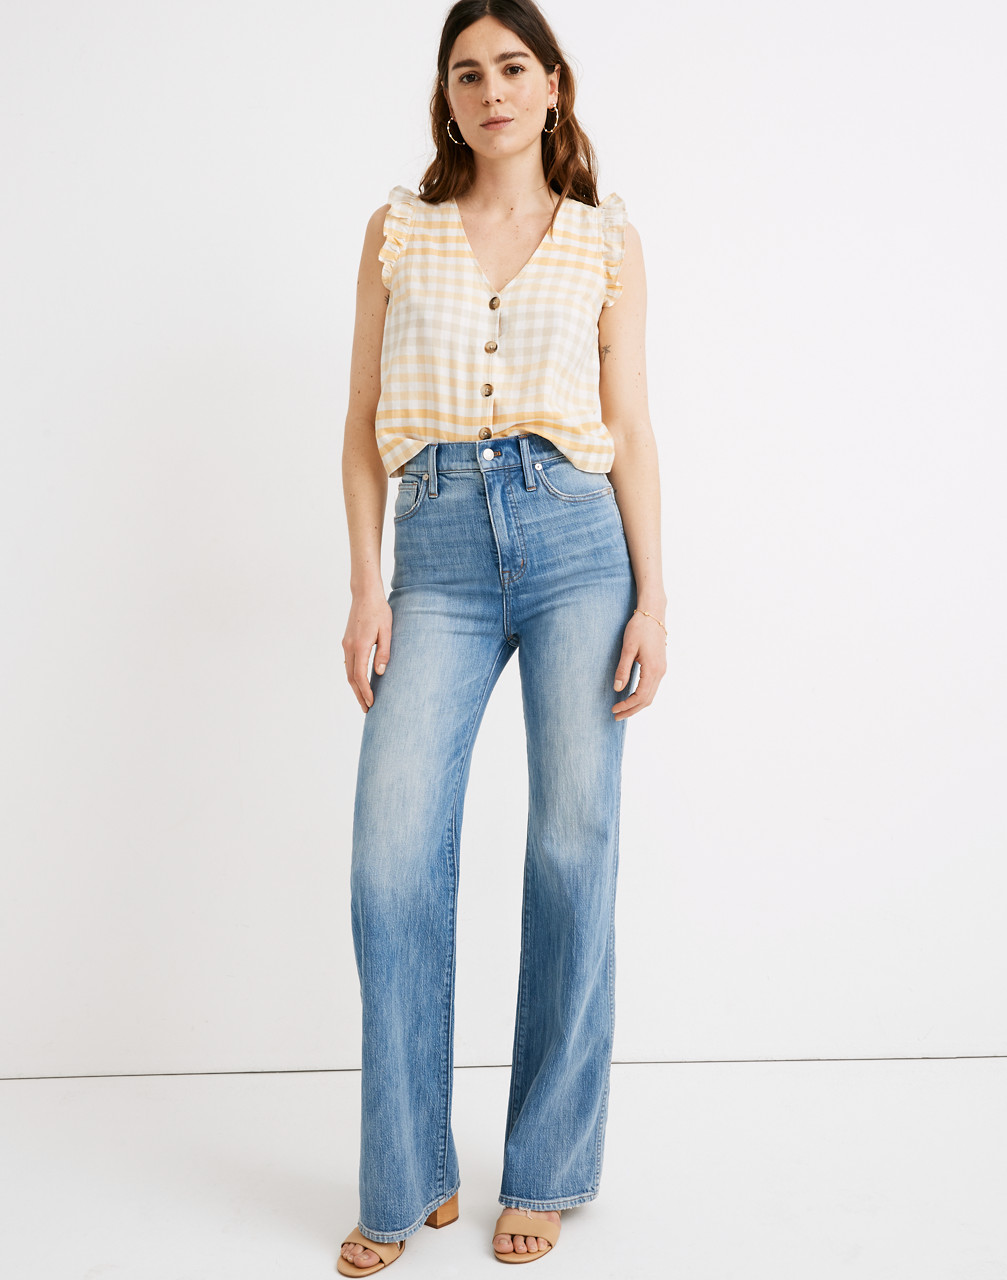 60s – 70s Pants, Jeans, Hippie, Bell Bottoms, Jumpsuits 11 High-Rise Flare Jeans in Arbordale Wash $75.99 AT vintagedancer.com